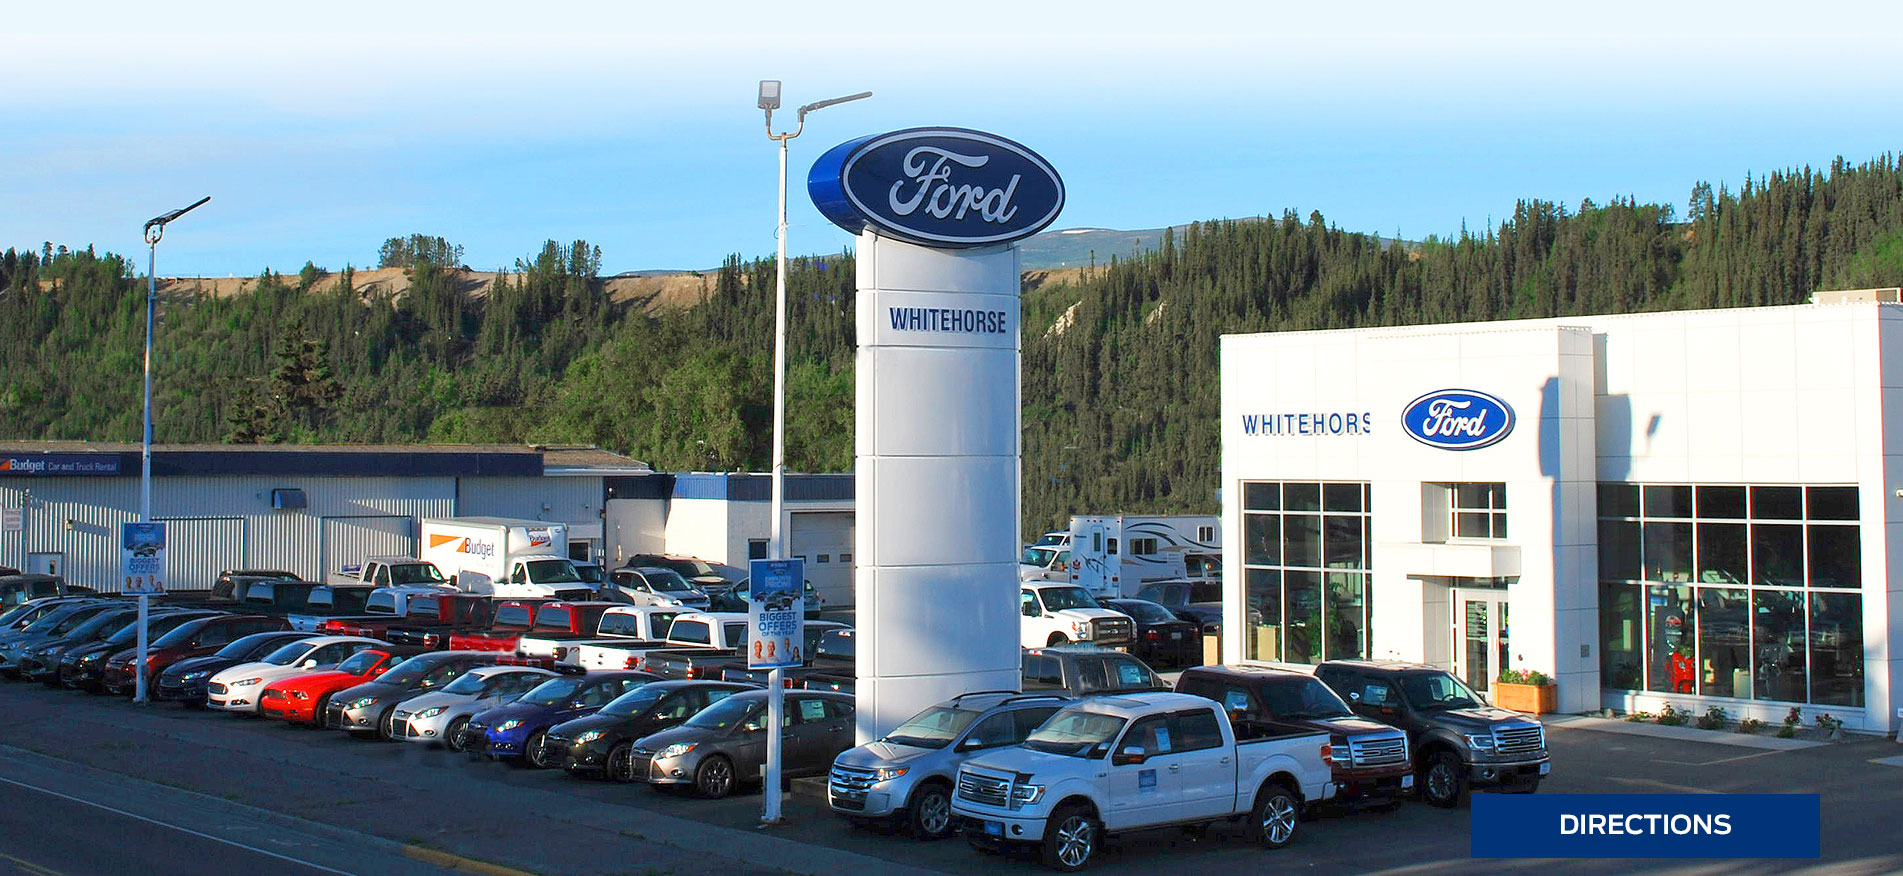 laramie peak motors is a ford dealer selling new and used